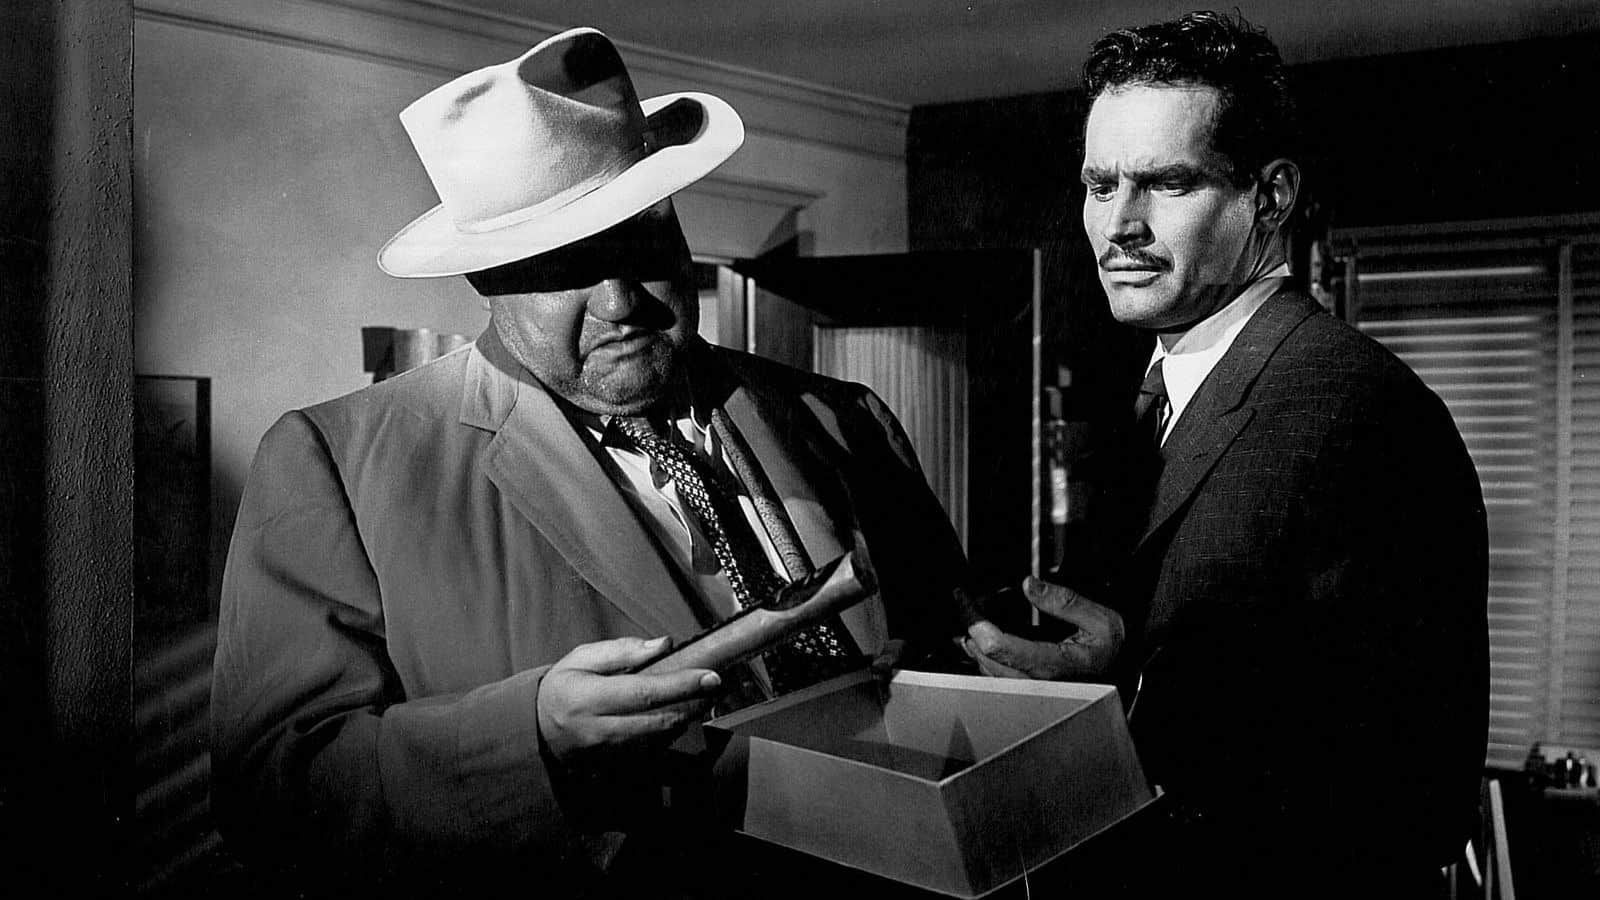 See Orson Welles' 'Touch of Evil' with film critic Rob Thomas ...